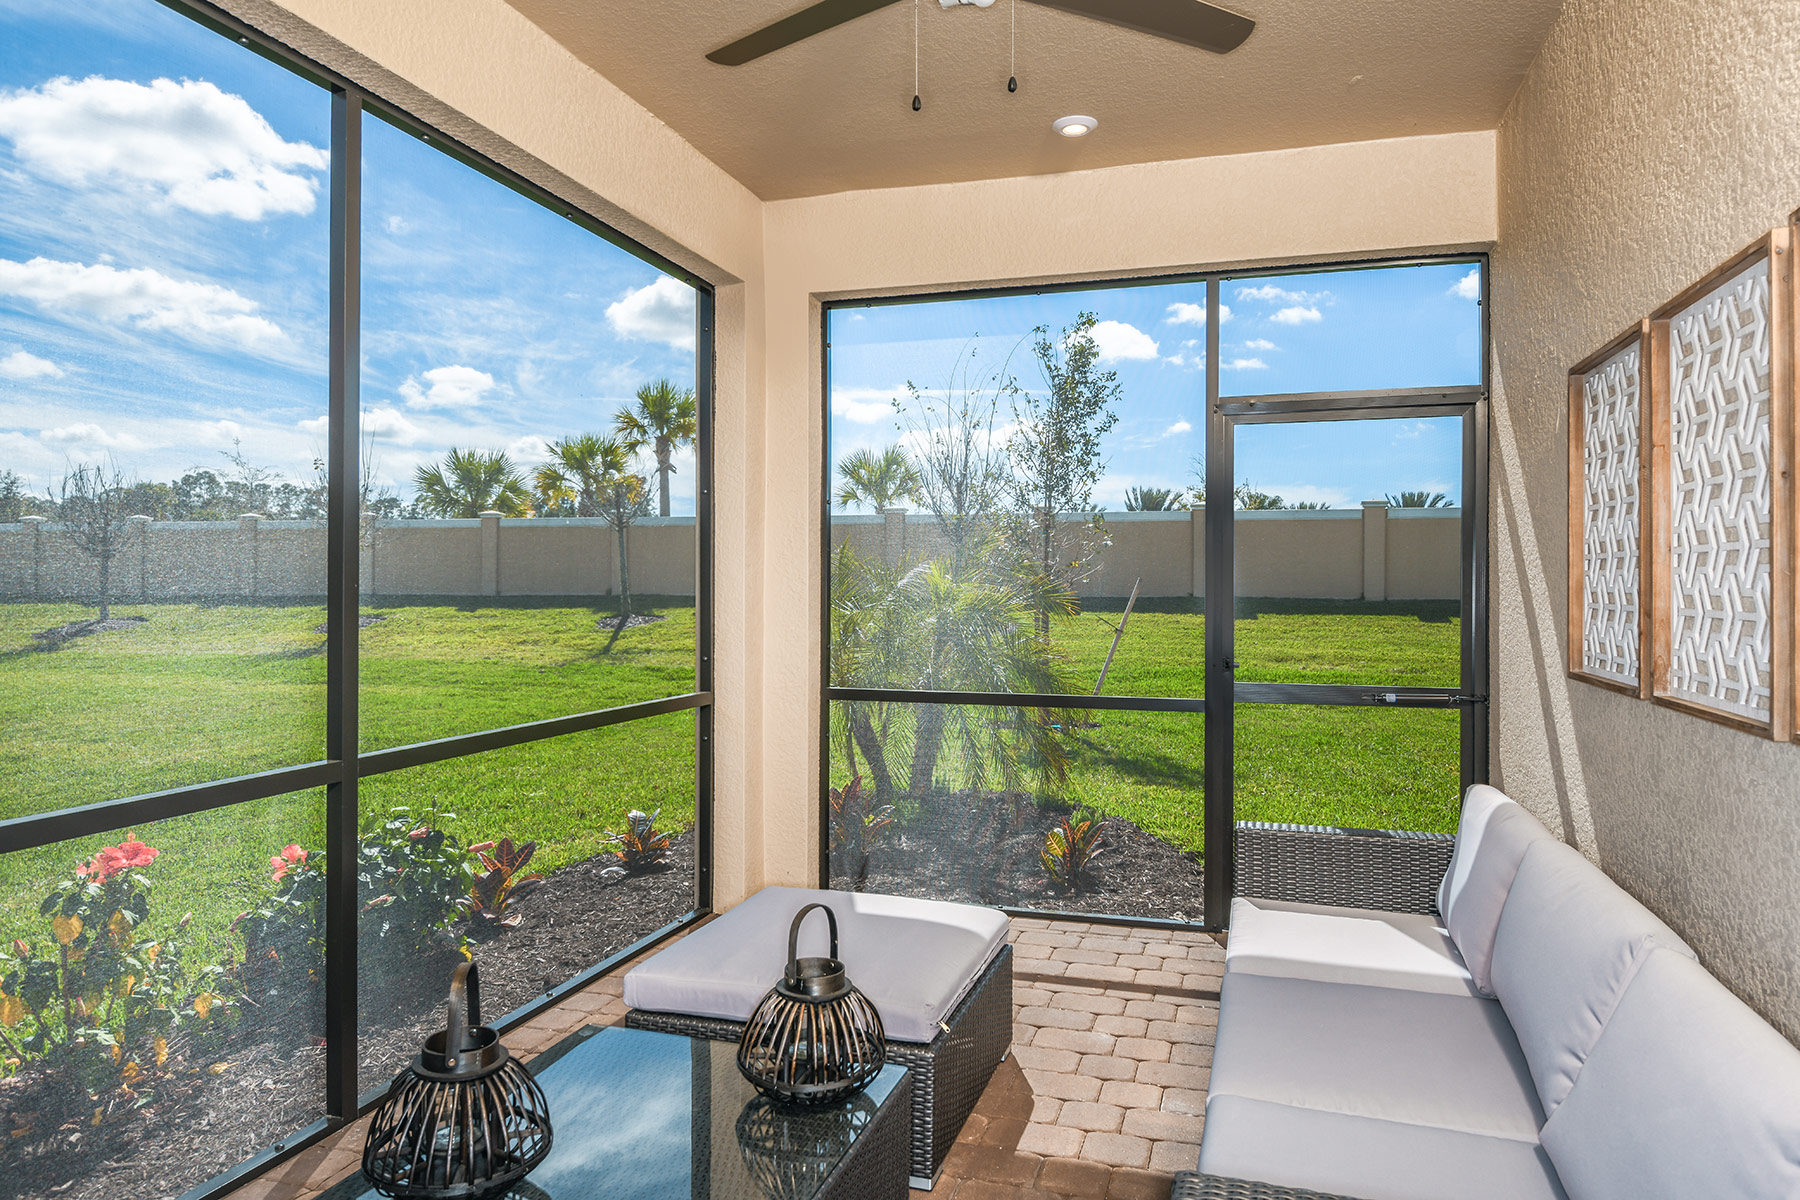 Dominica II Plan Patio at Wellen Park - Renaissance in Venice Florida by Mattamy Homes